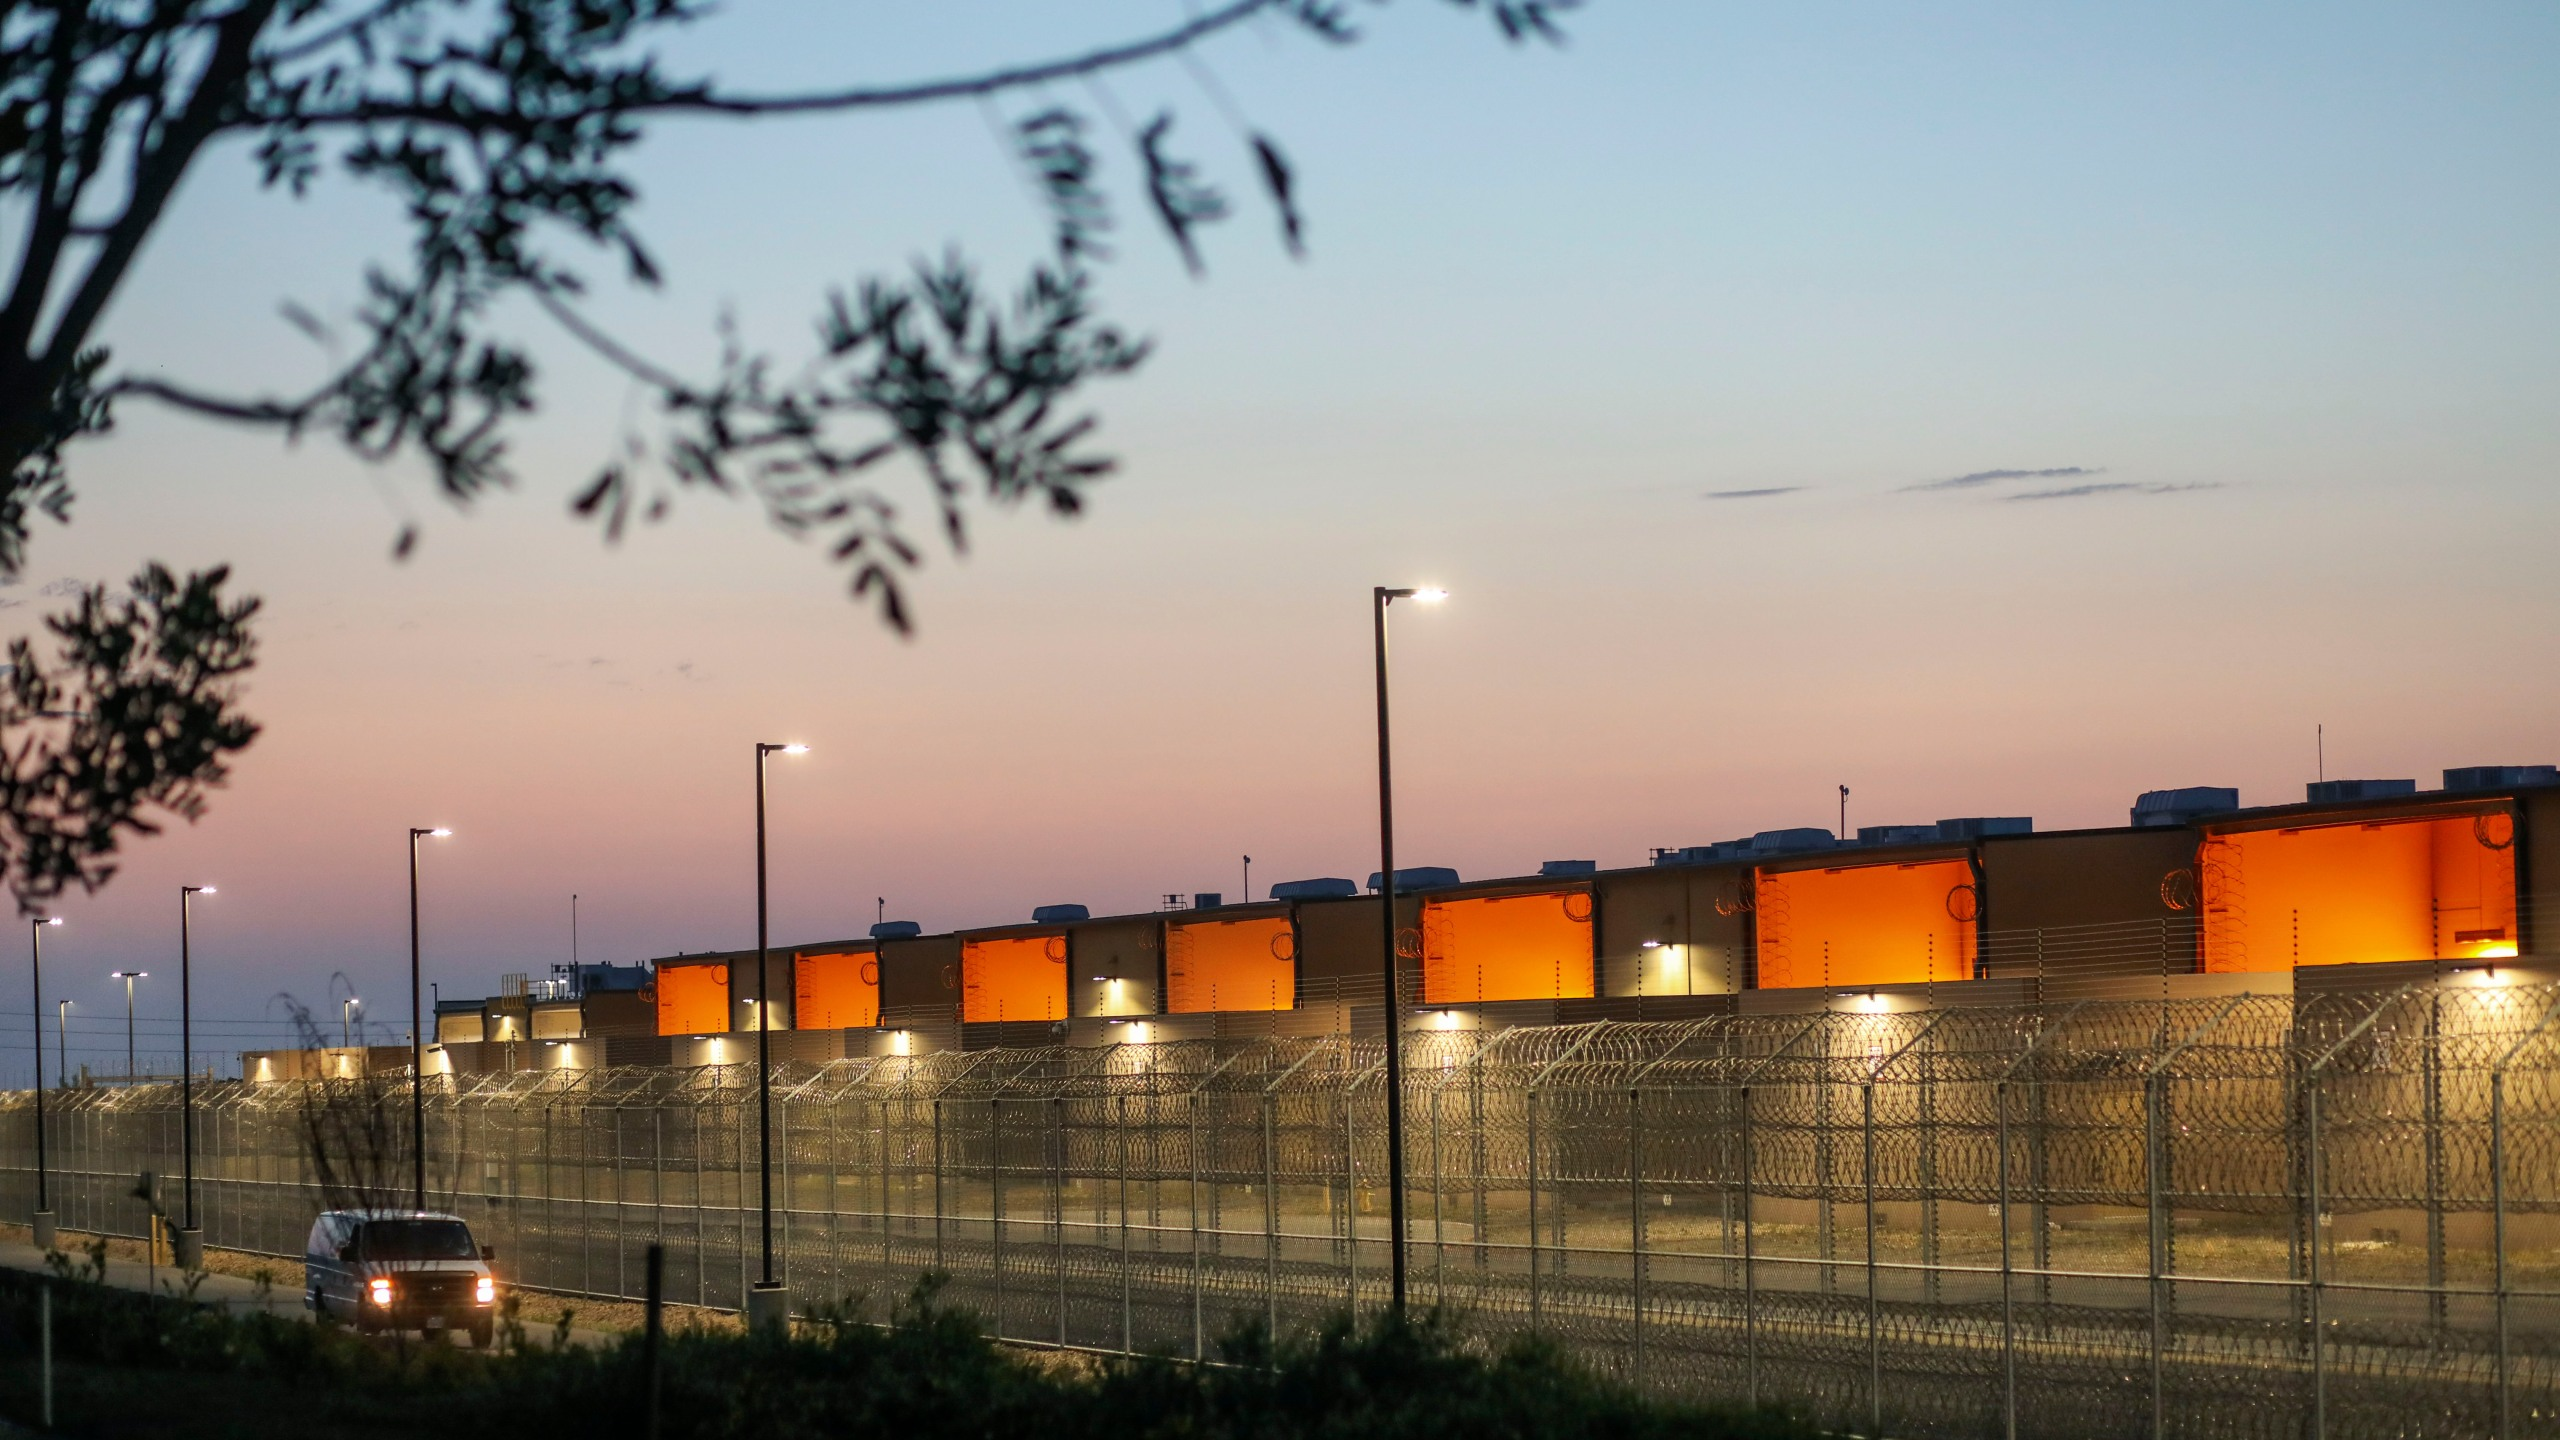 The Otay Mesa Detention Center east of San Diego near the Mexico border is seen on May 9, 2020. (Sandy Huffaker / AFP / Getty Images)